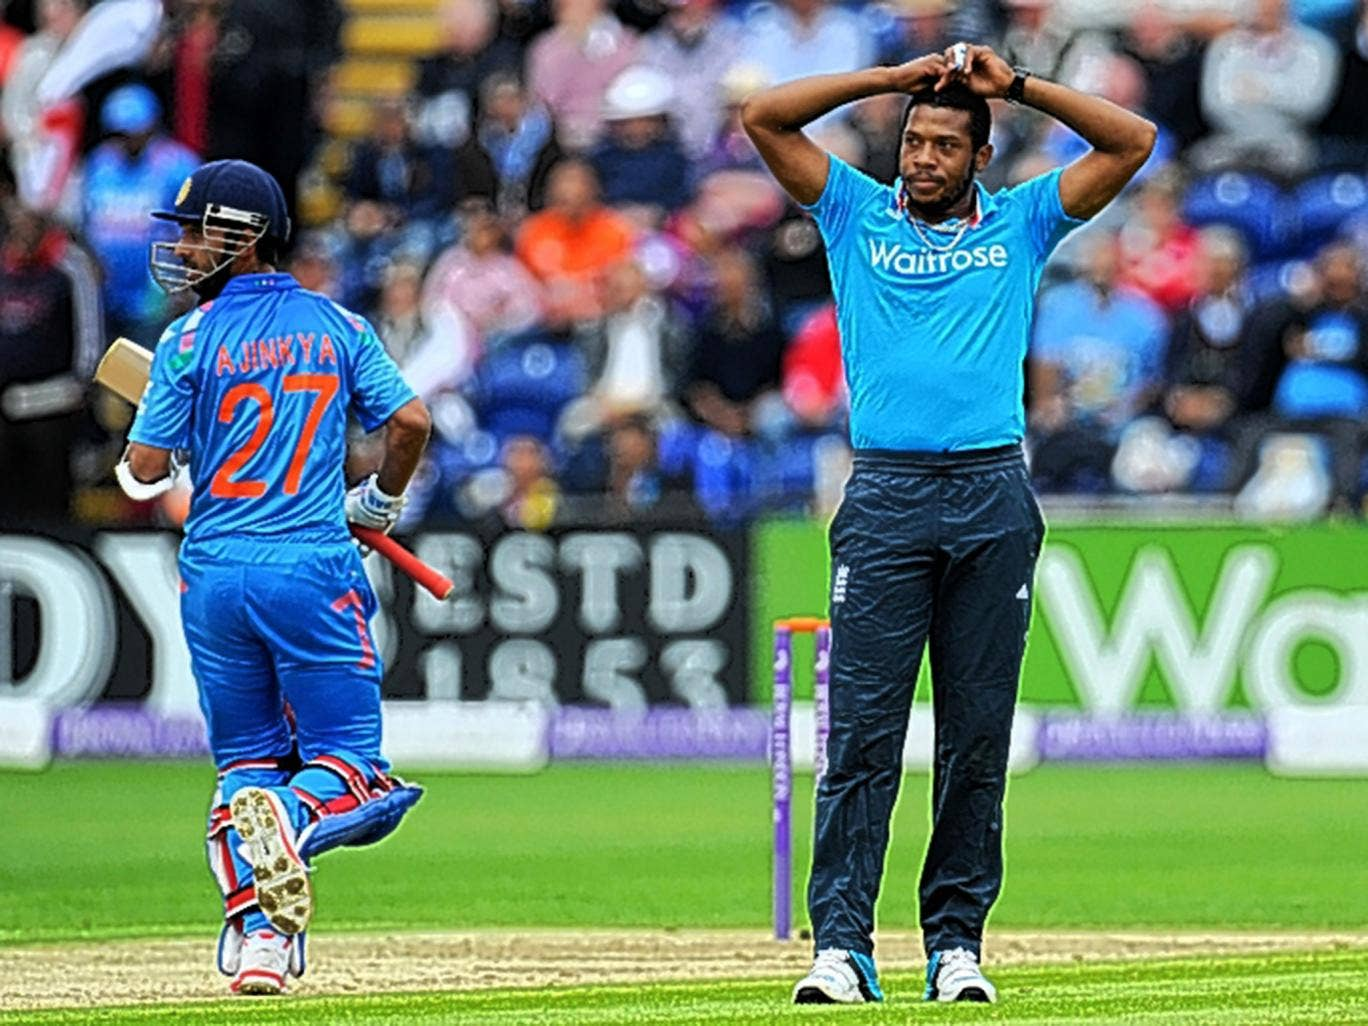 Chris Jordan looked a shadow of his former self during England's defeat in Cardiff